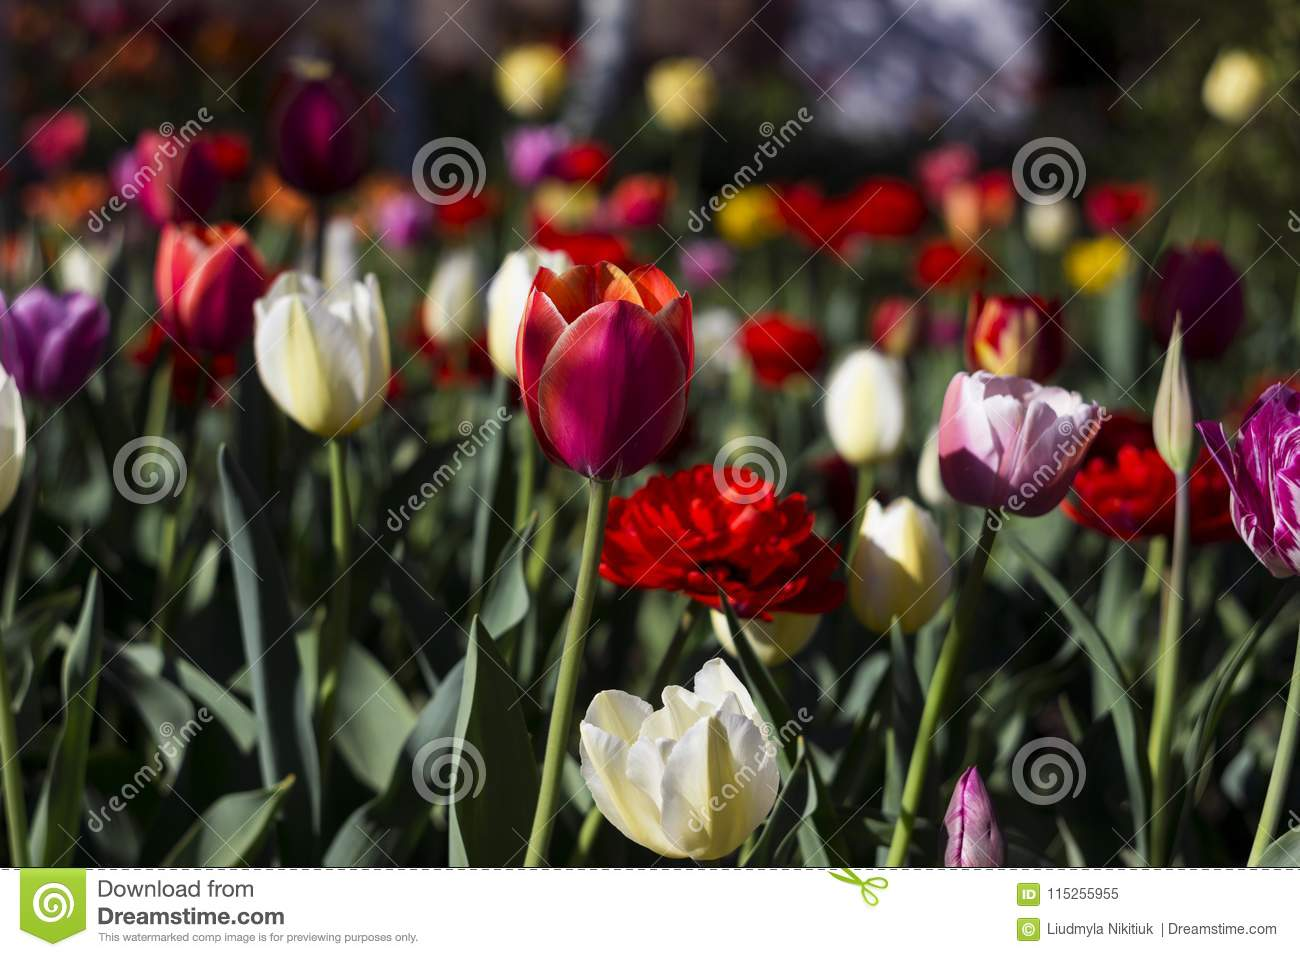 Many Kinds Of Tulips In The Garden Red White Pink Flowers Stock